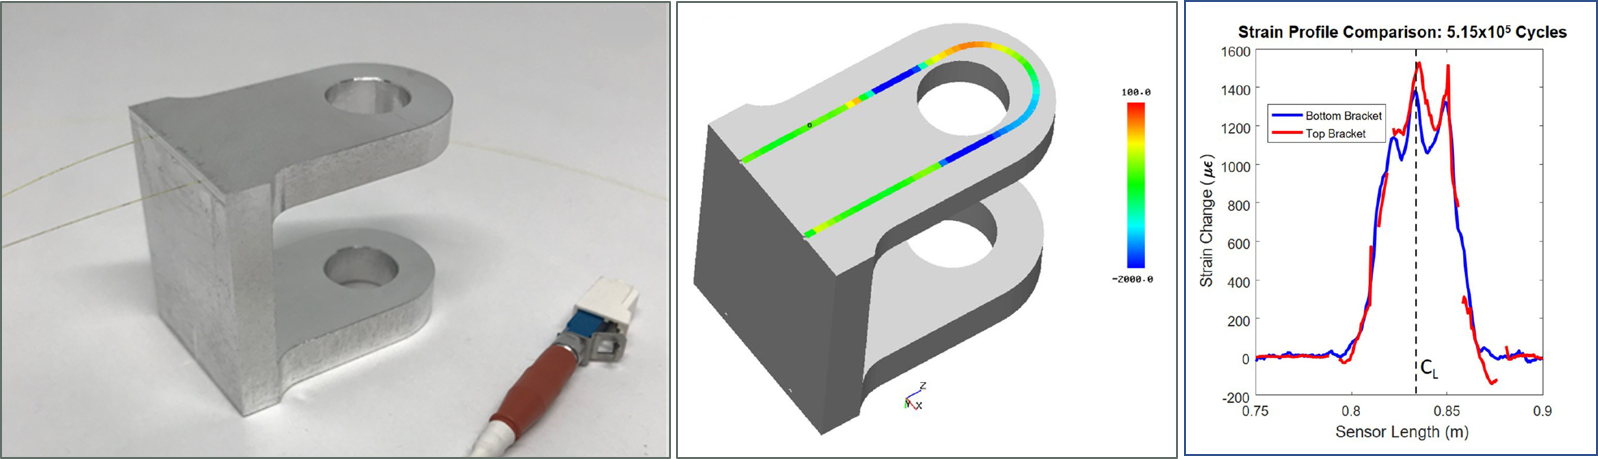 3D Printed Part with Embedded Sensor